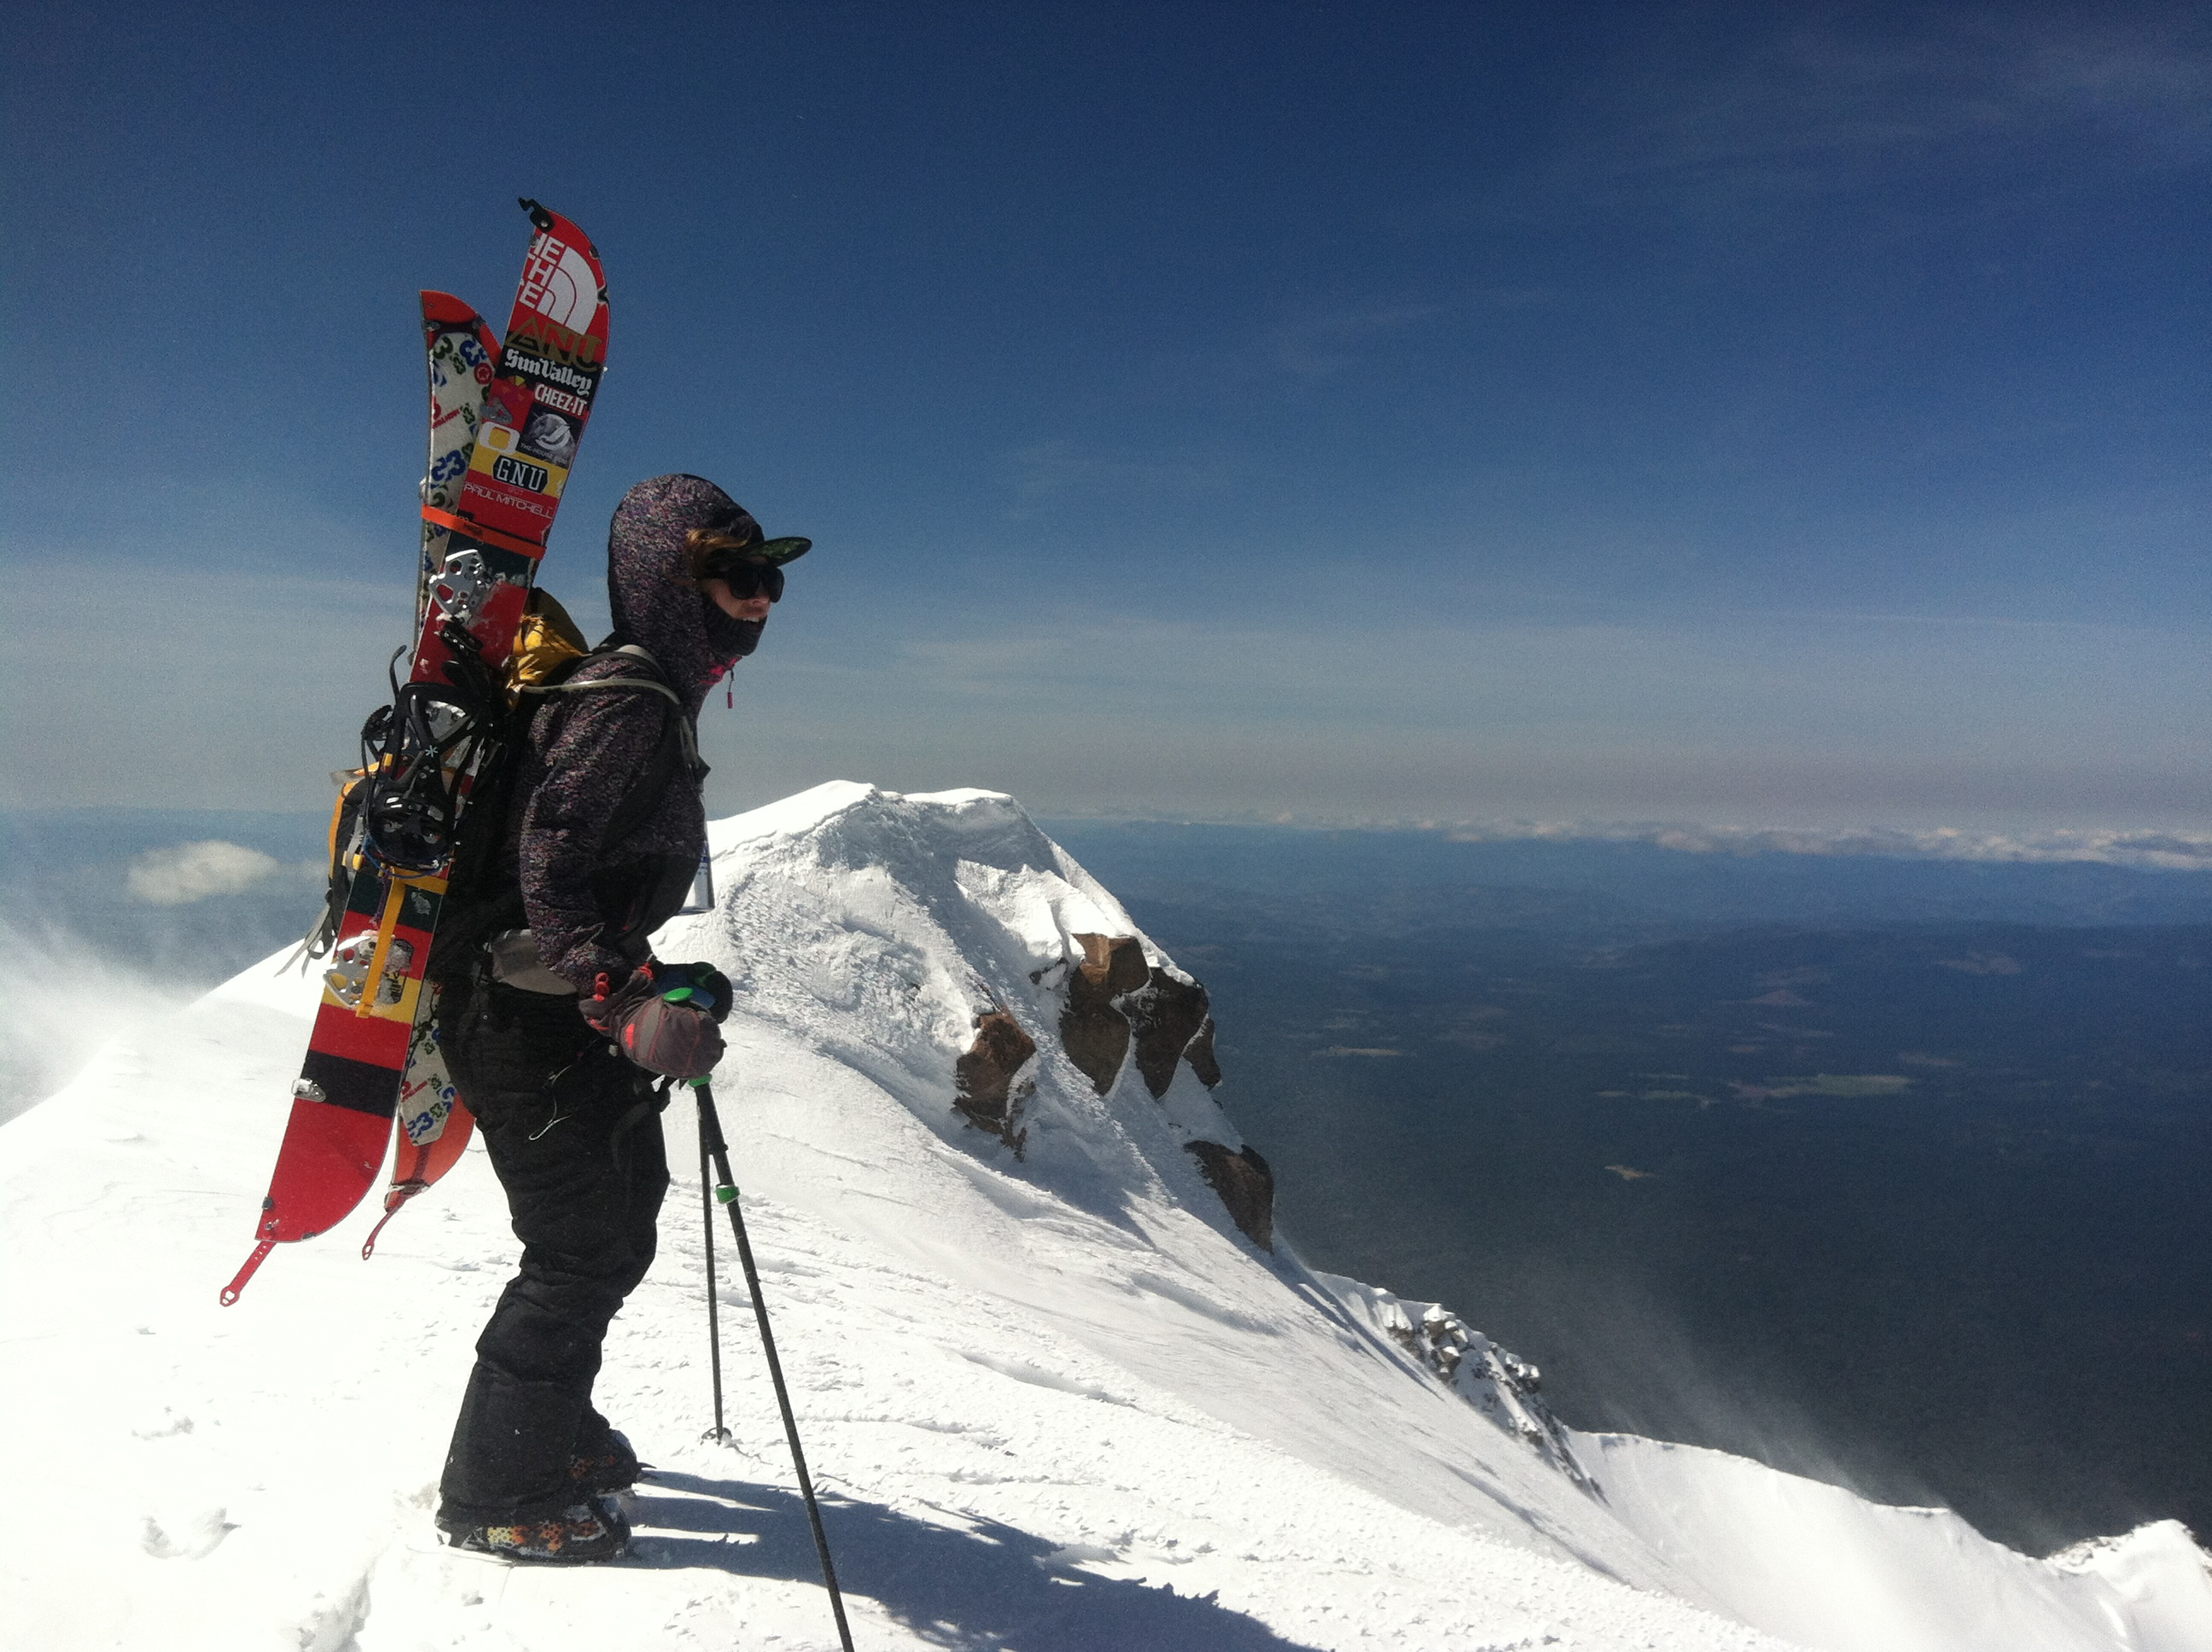 A professional women's snowboarder at the peak of Mount Rainier.